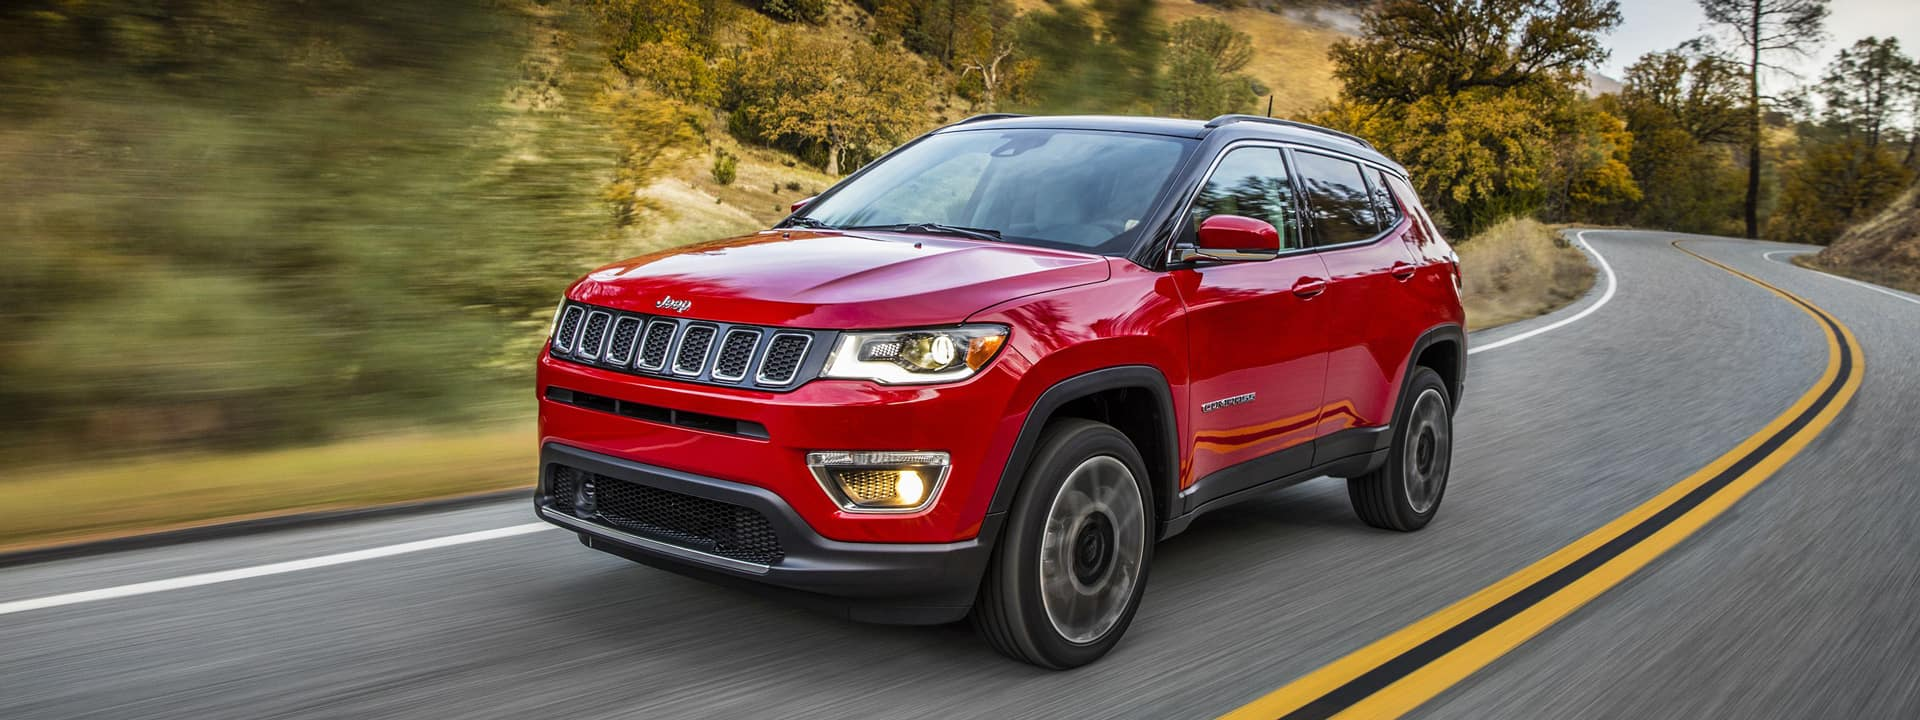 2021 Jeep Compass in New Orleans